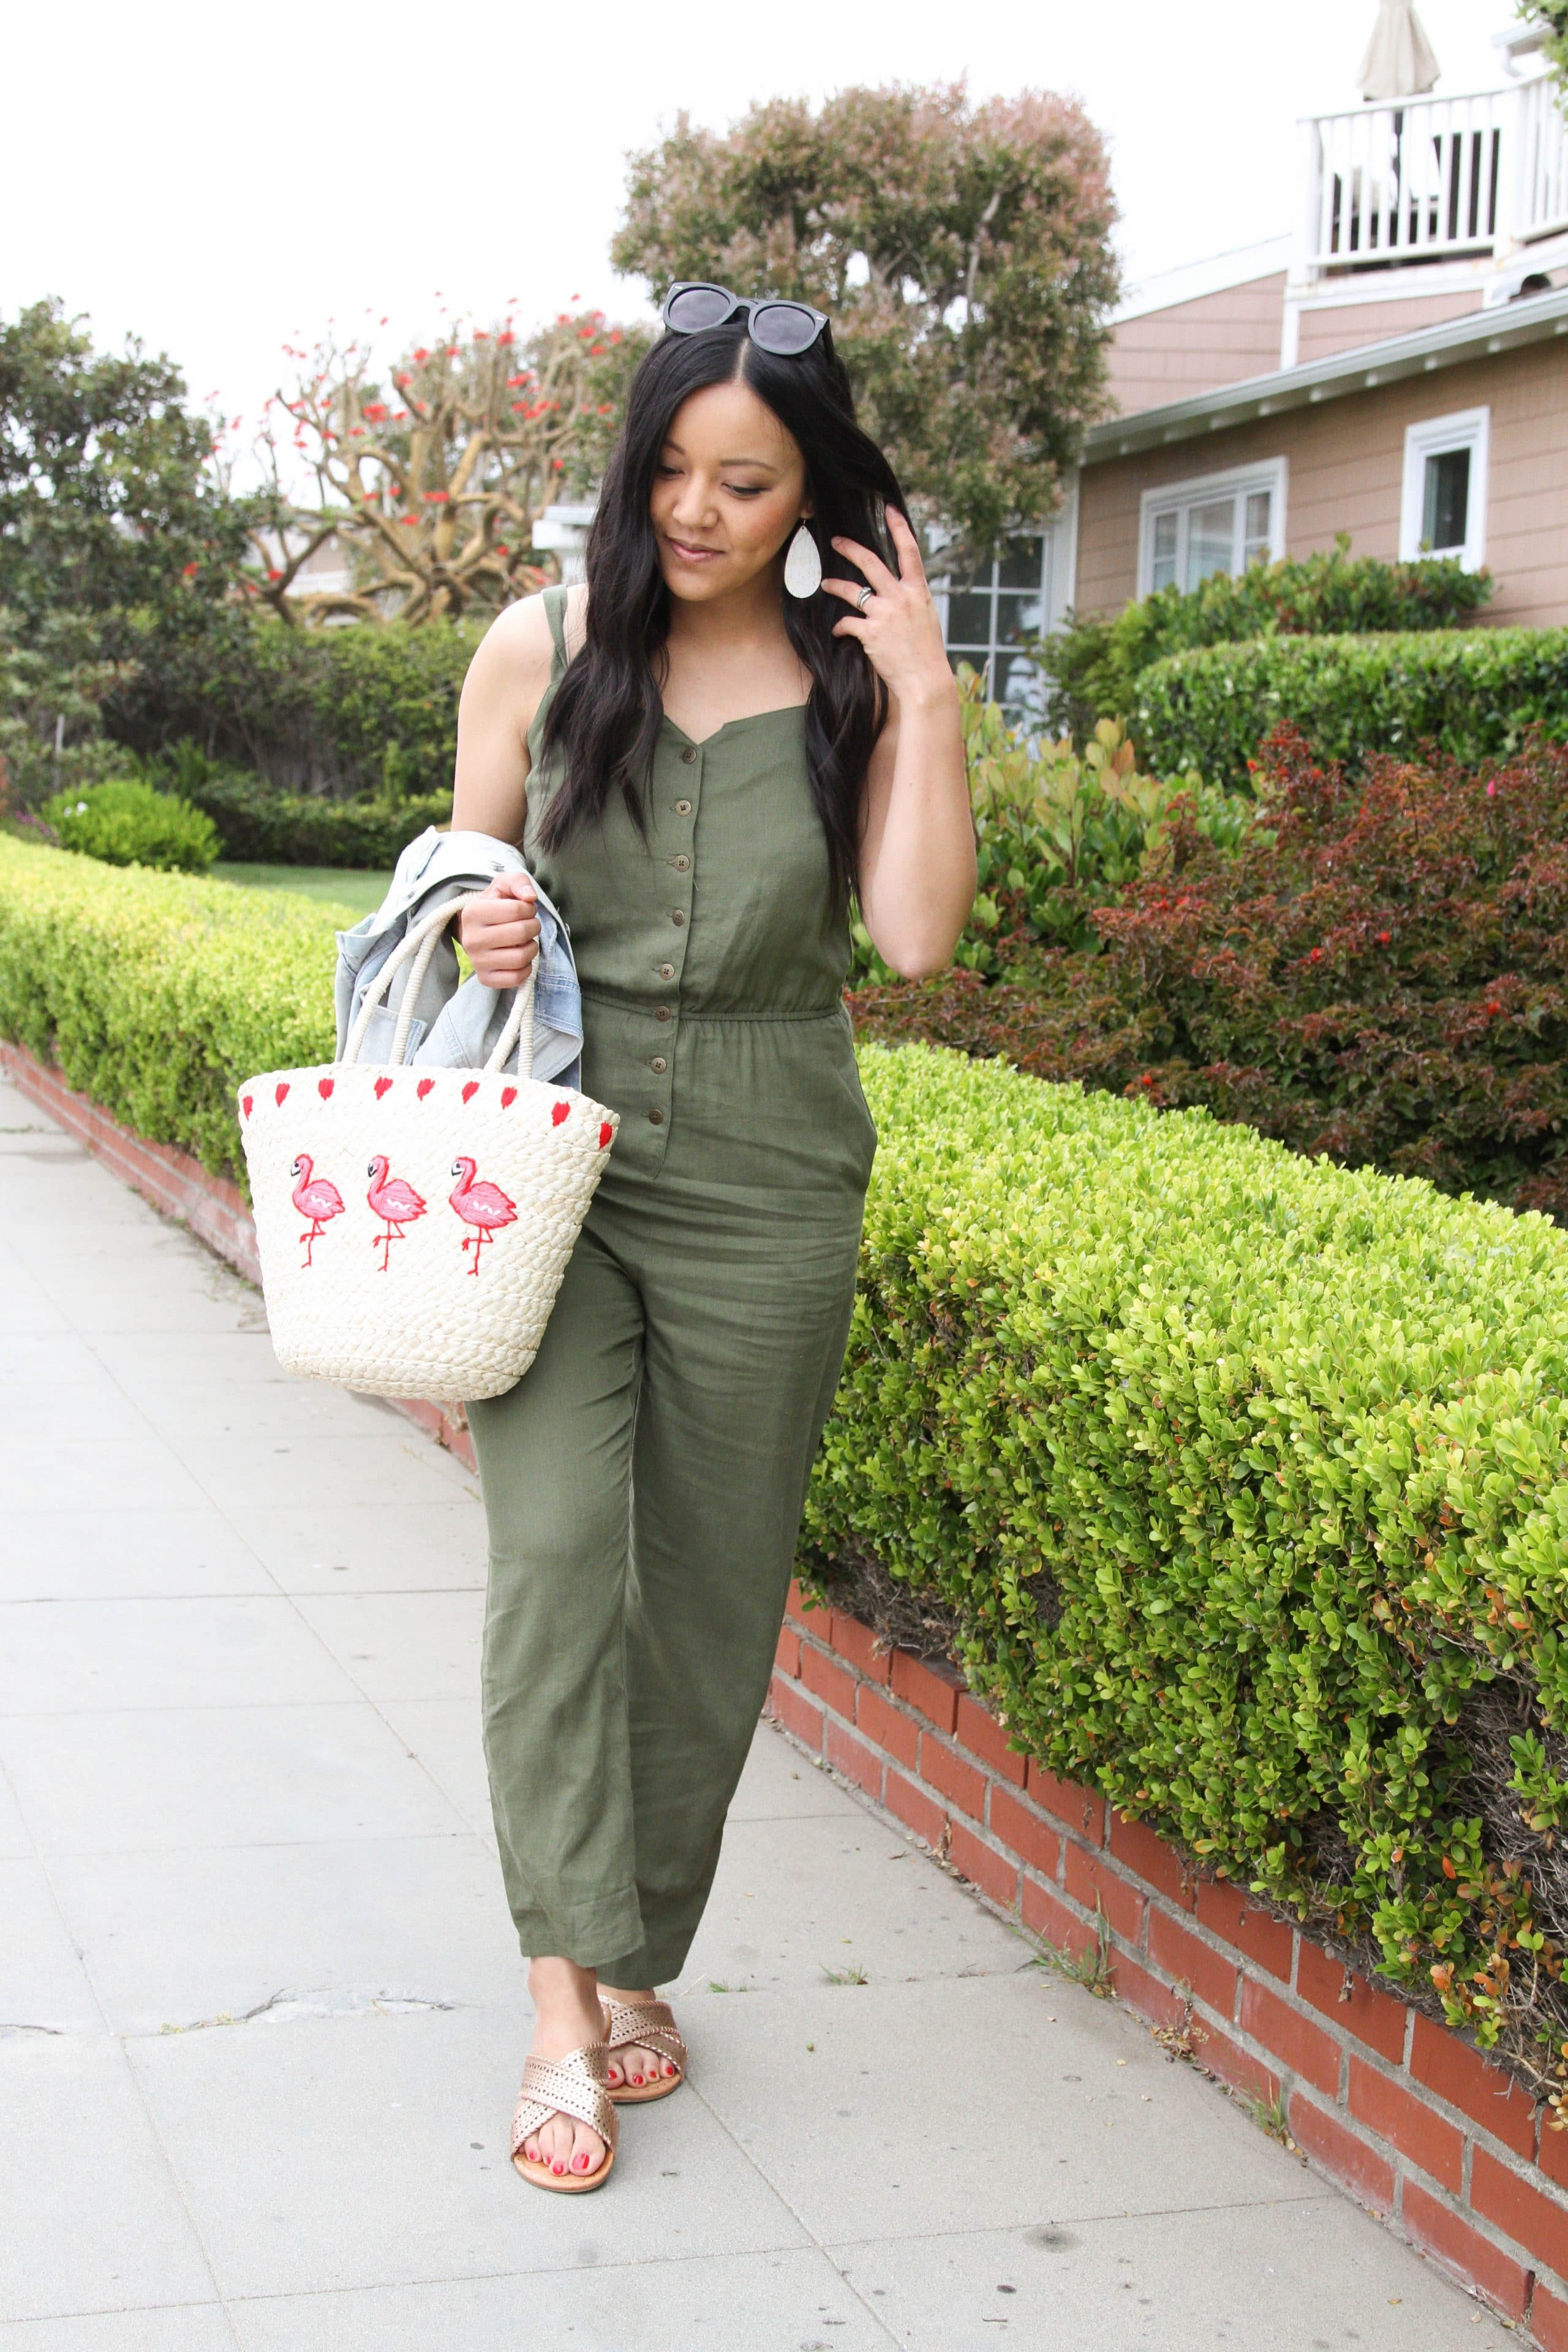 59f2c7168d1d3 ... Olive Jumpsuit + Gold Sandals + Straw Tote + Jean Jacket + Statement  Earrings ...